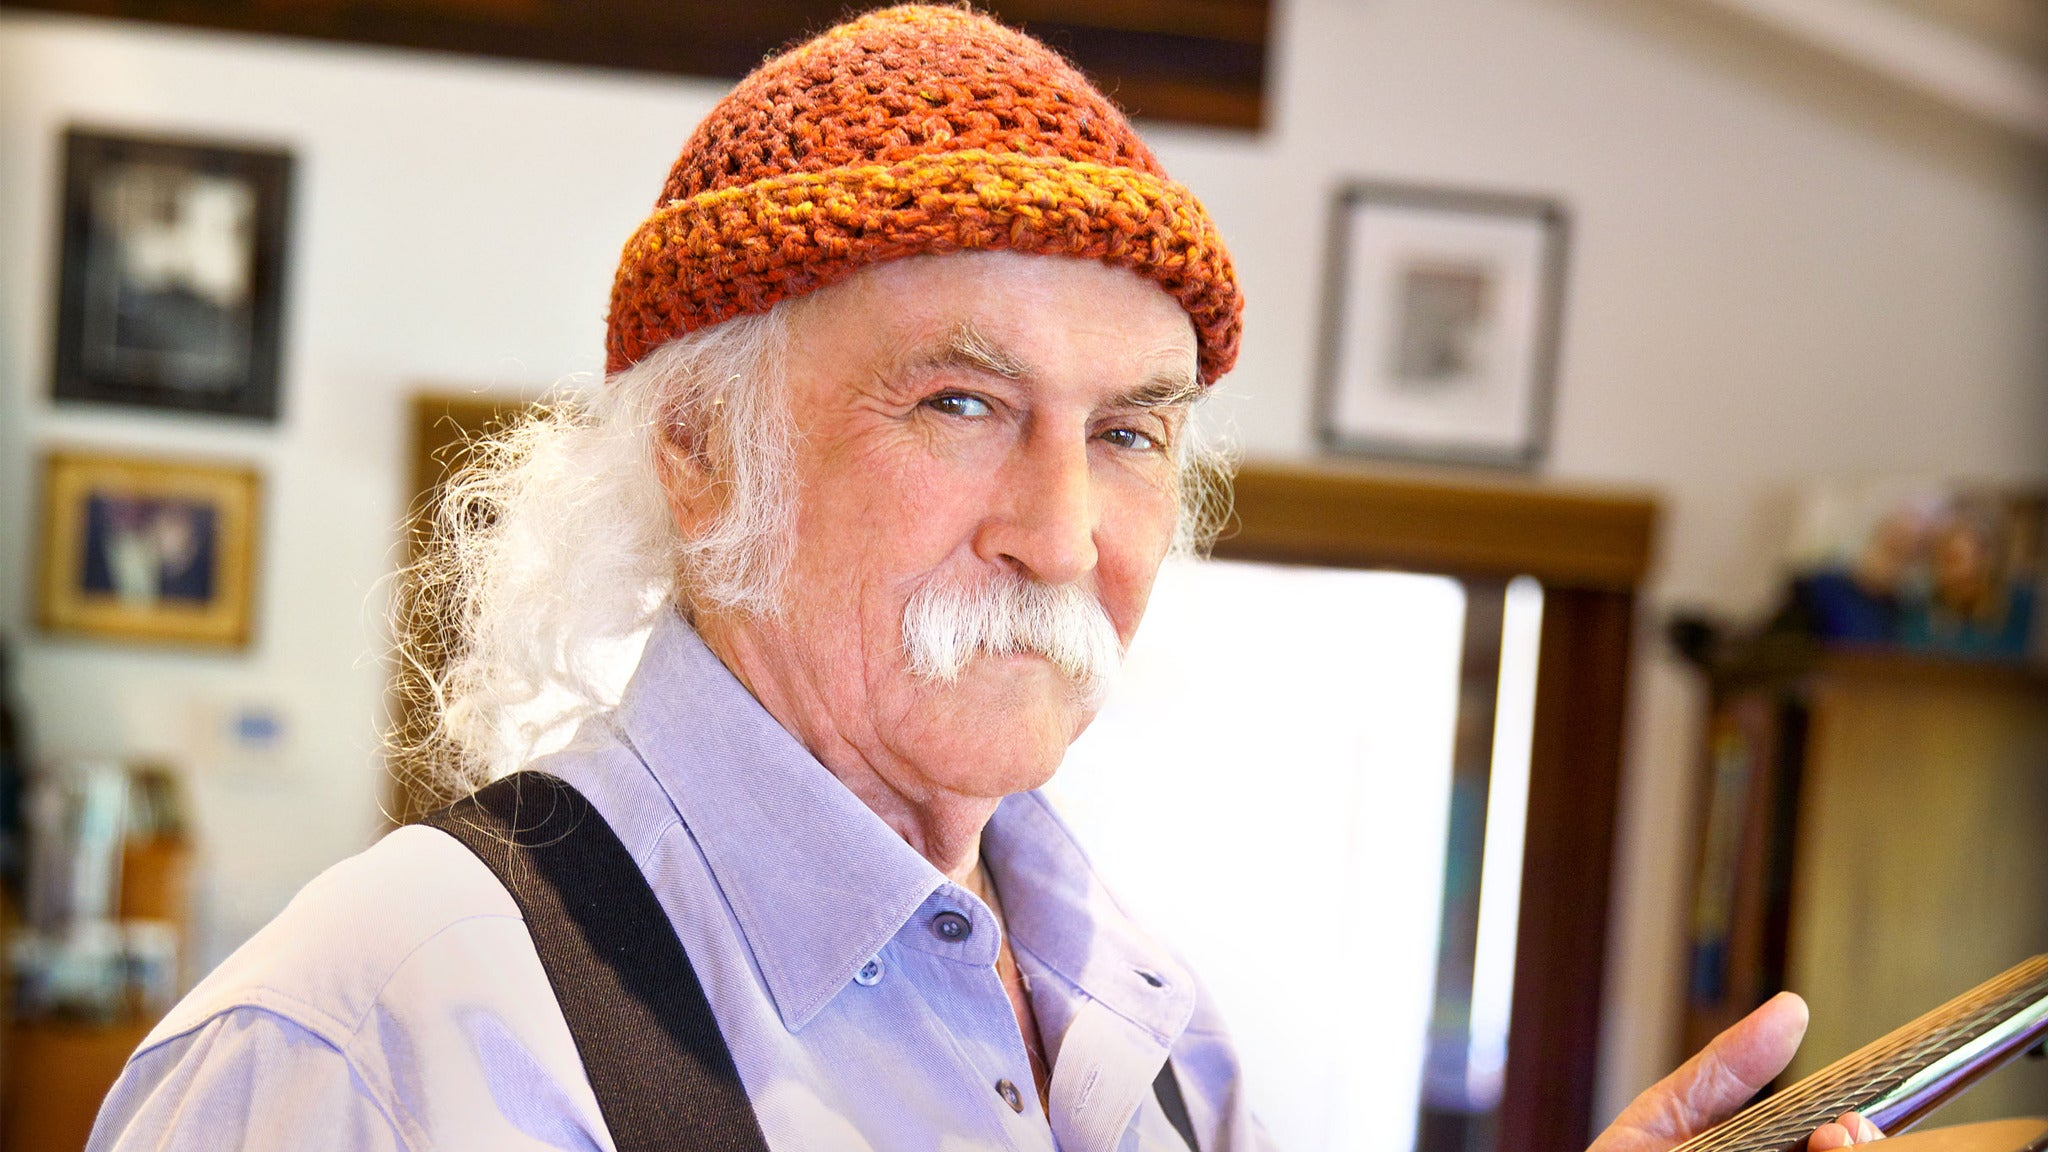 David Crosby at Golden State Theatre